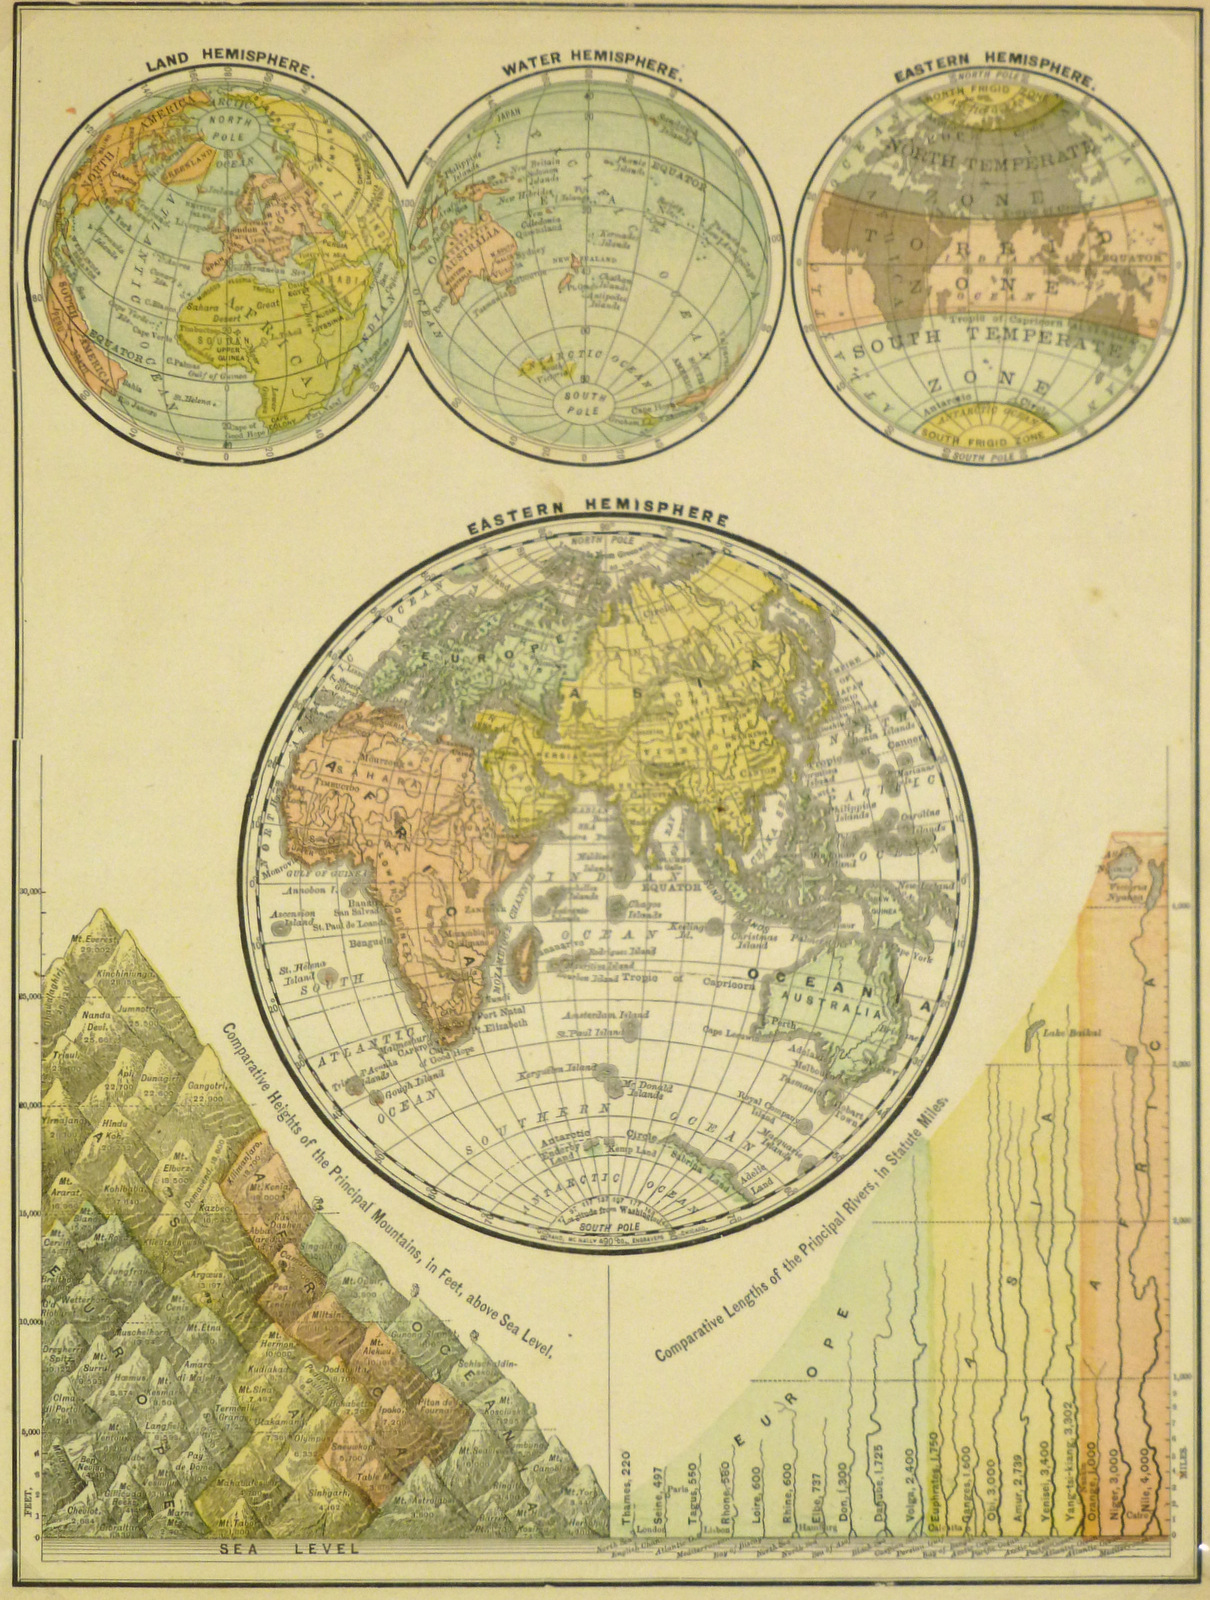 World Hemisphere Map, 1890-main-8198K